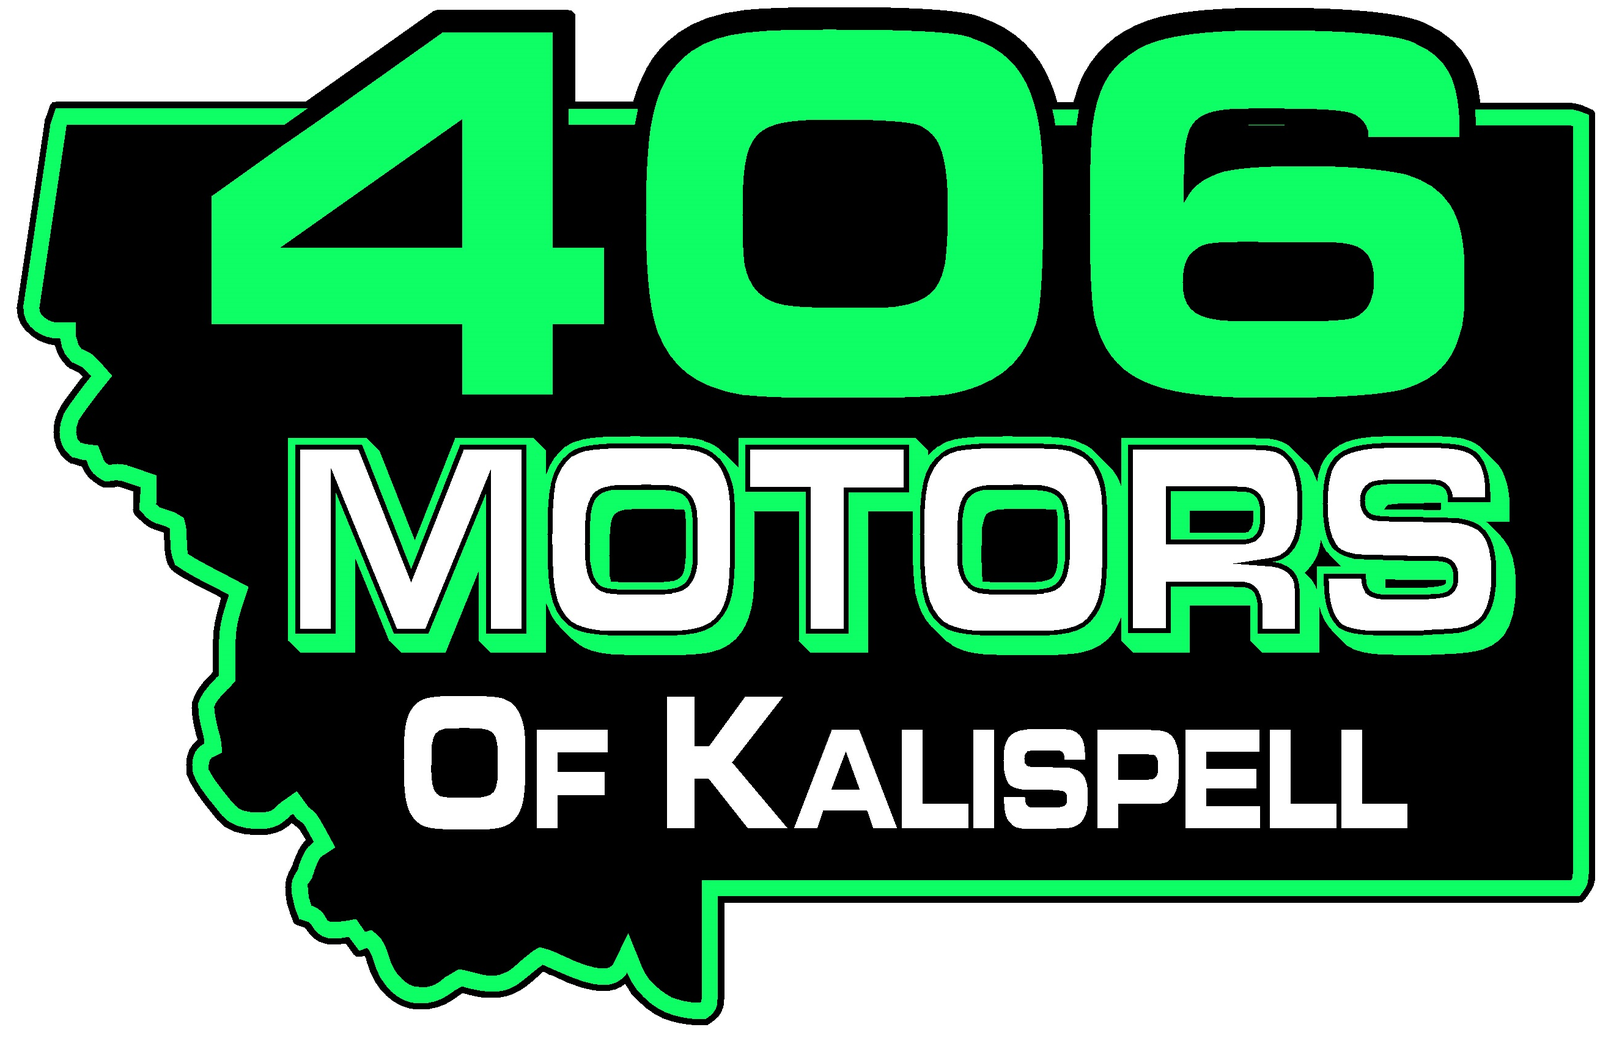 406 motors of kalispell kalispell mt read consumer